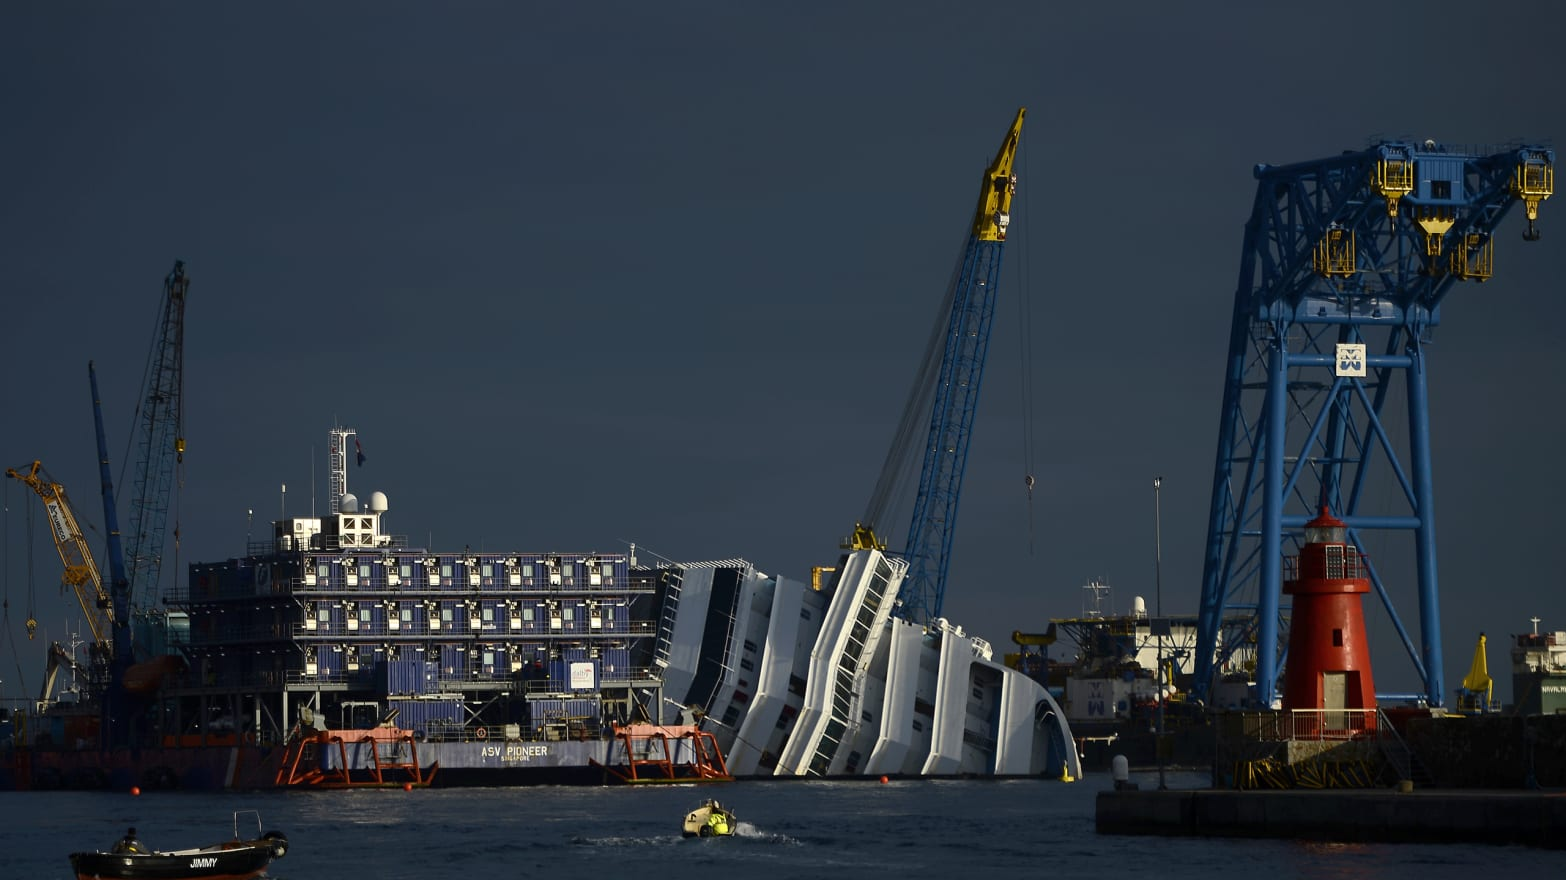 Risky Rescue: A Year After It Sank, Raising the Costa Concordia